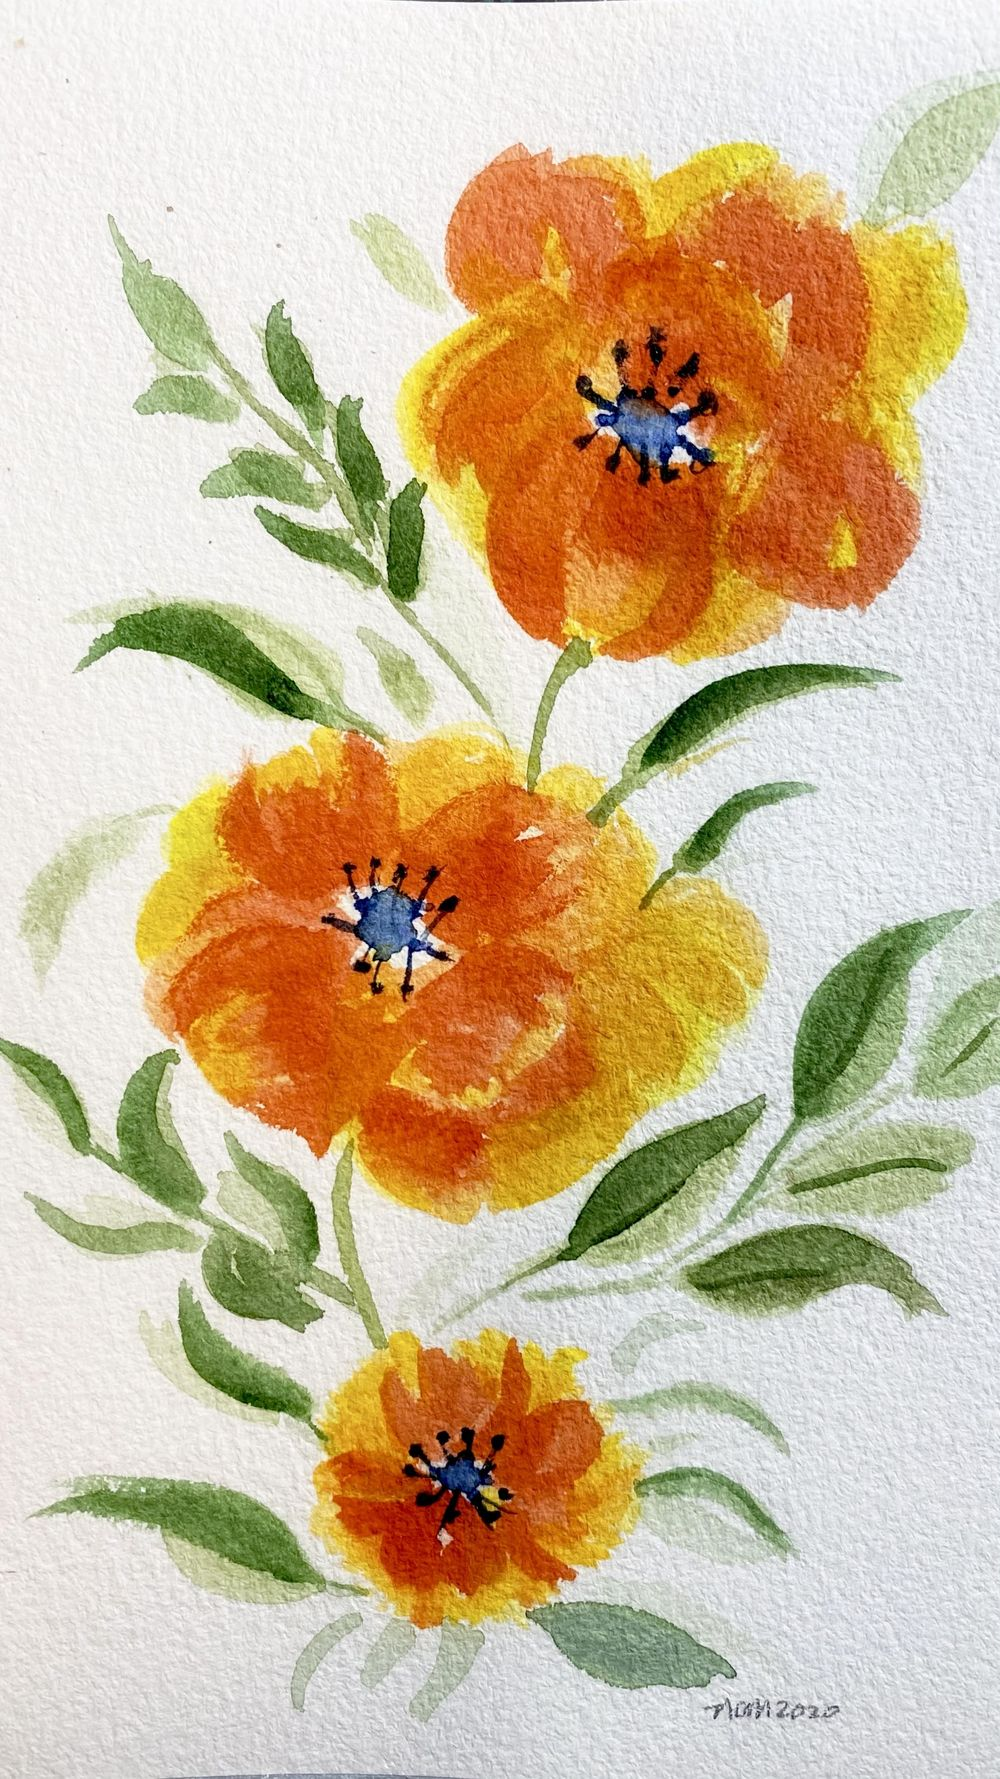 INCredible Poppies, Buckthorn, Squirrel - image 1 - student project